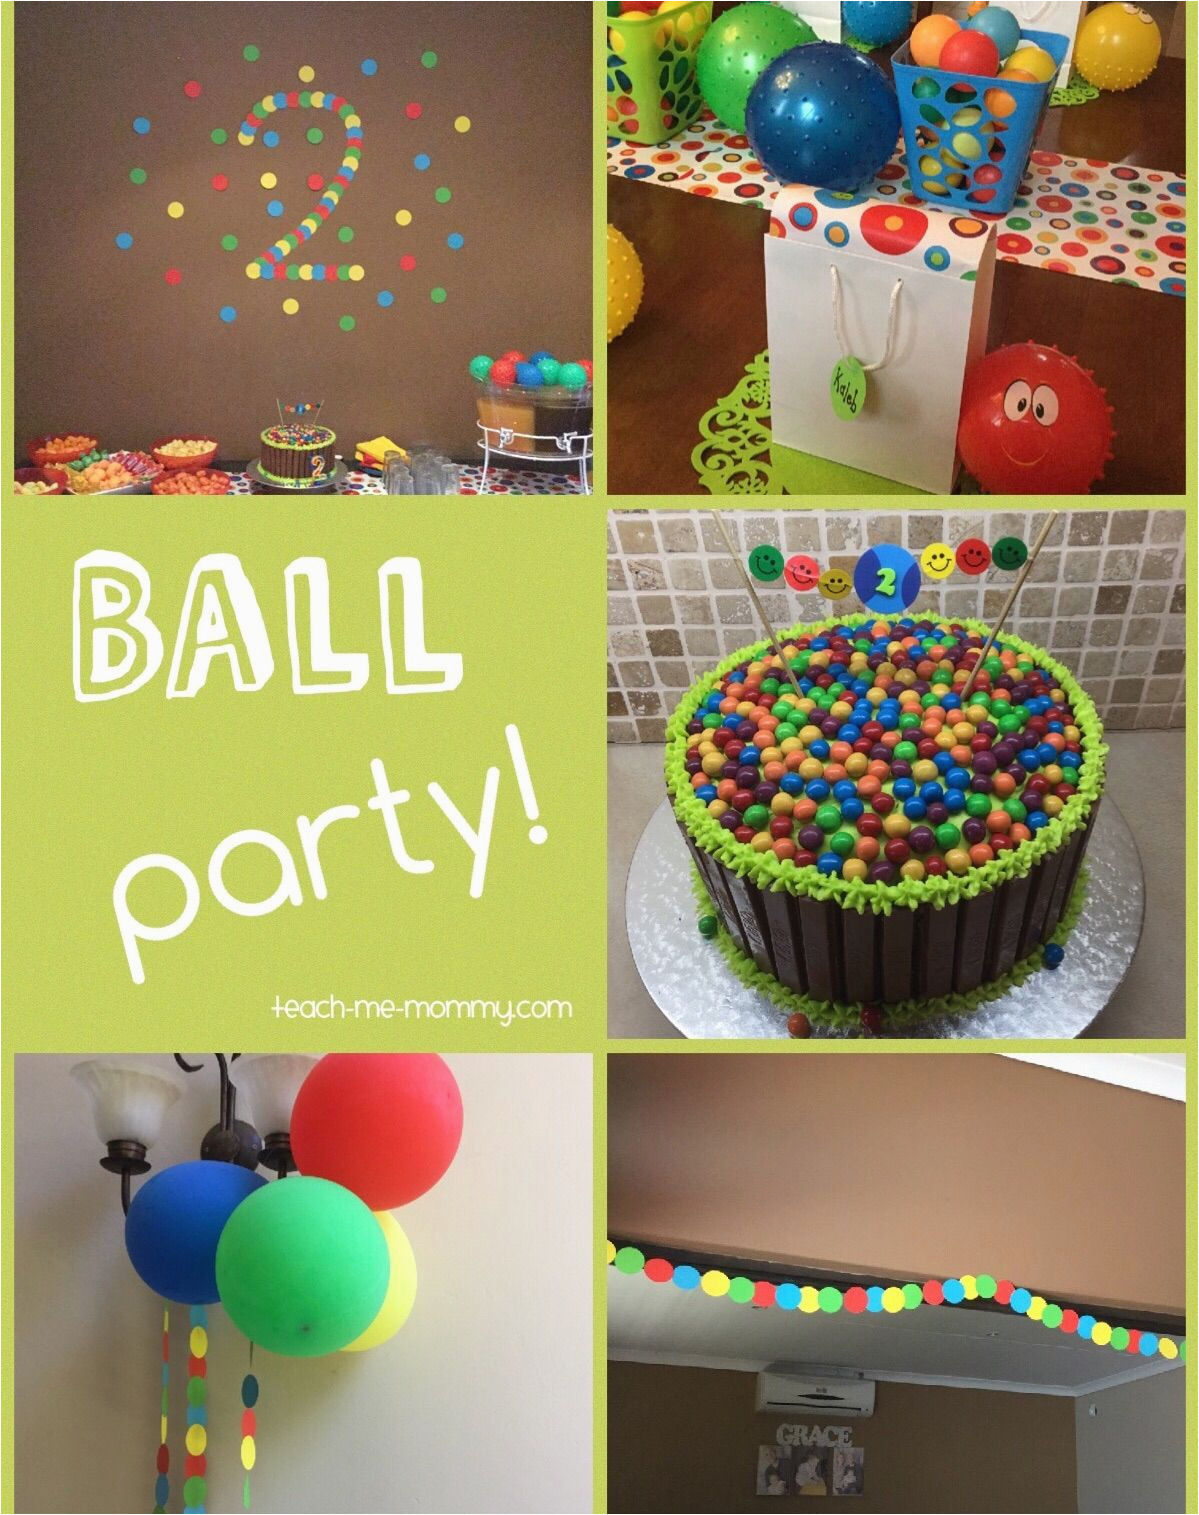 2 Year Old Birthday Decoration Ideas Ball themed Party for A 2 Year Old themed Parties